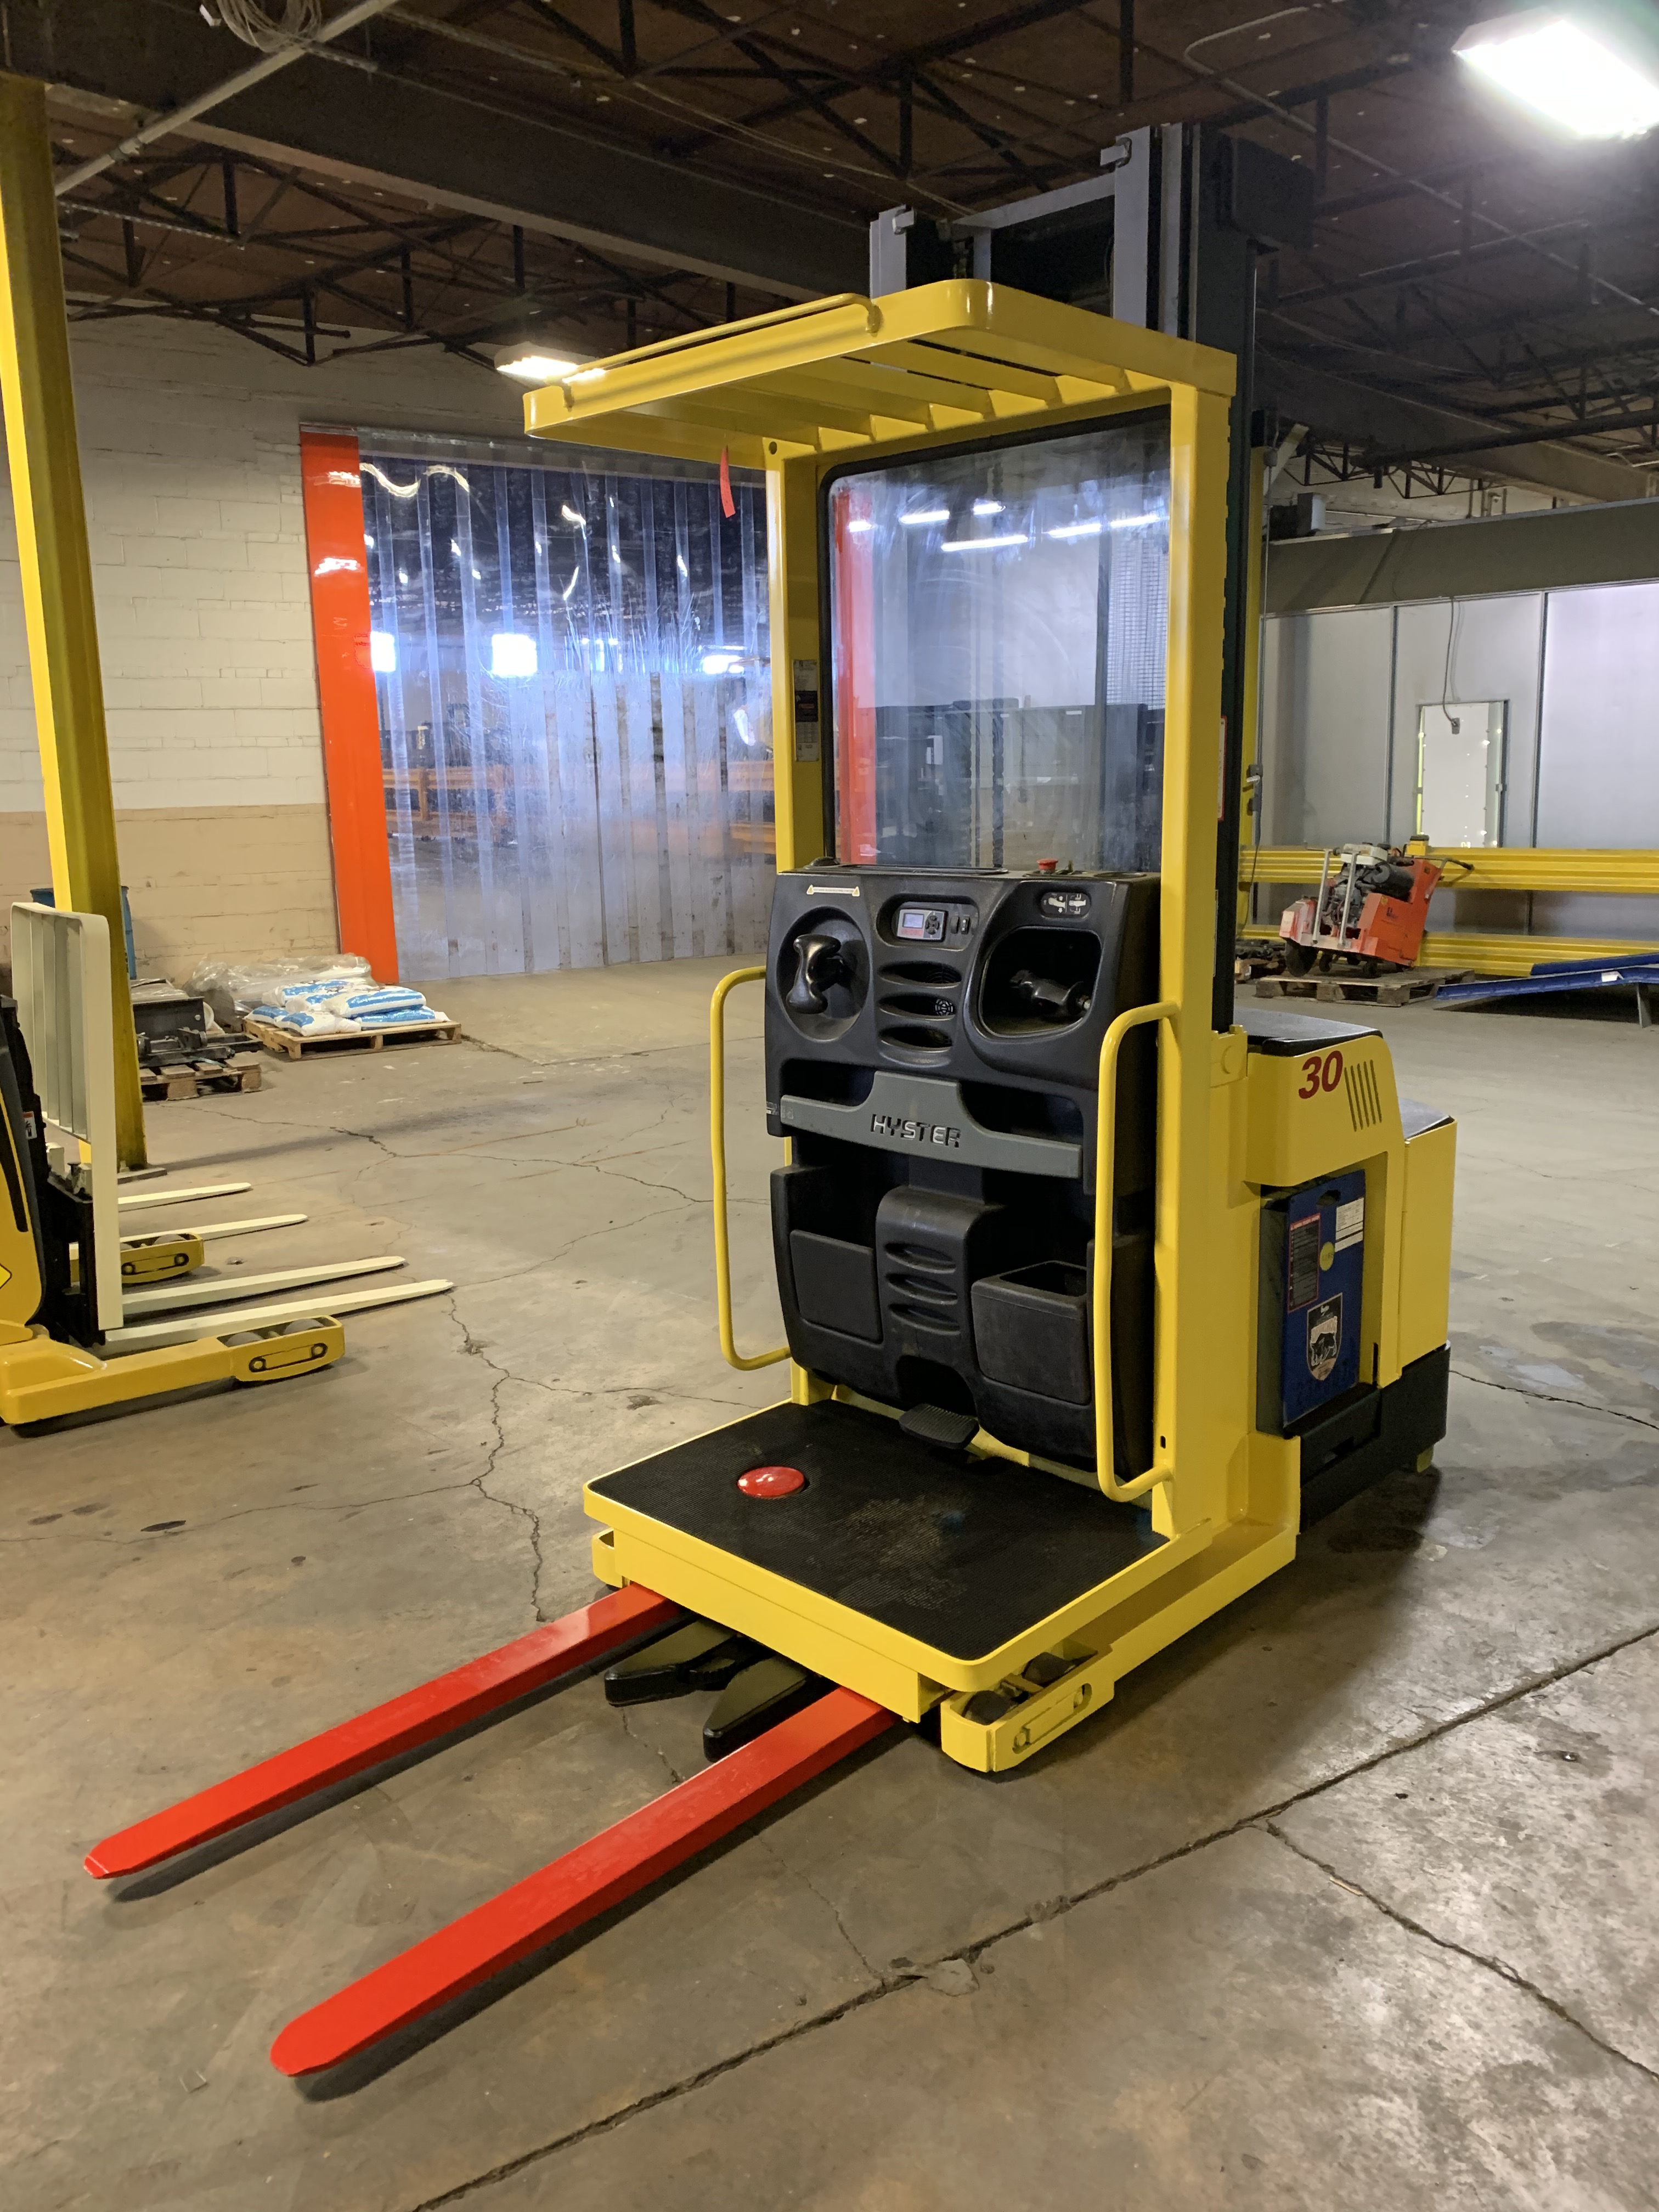 Similar Used Equipment - 2013 Hyster R30XMS3